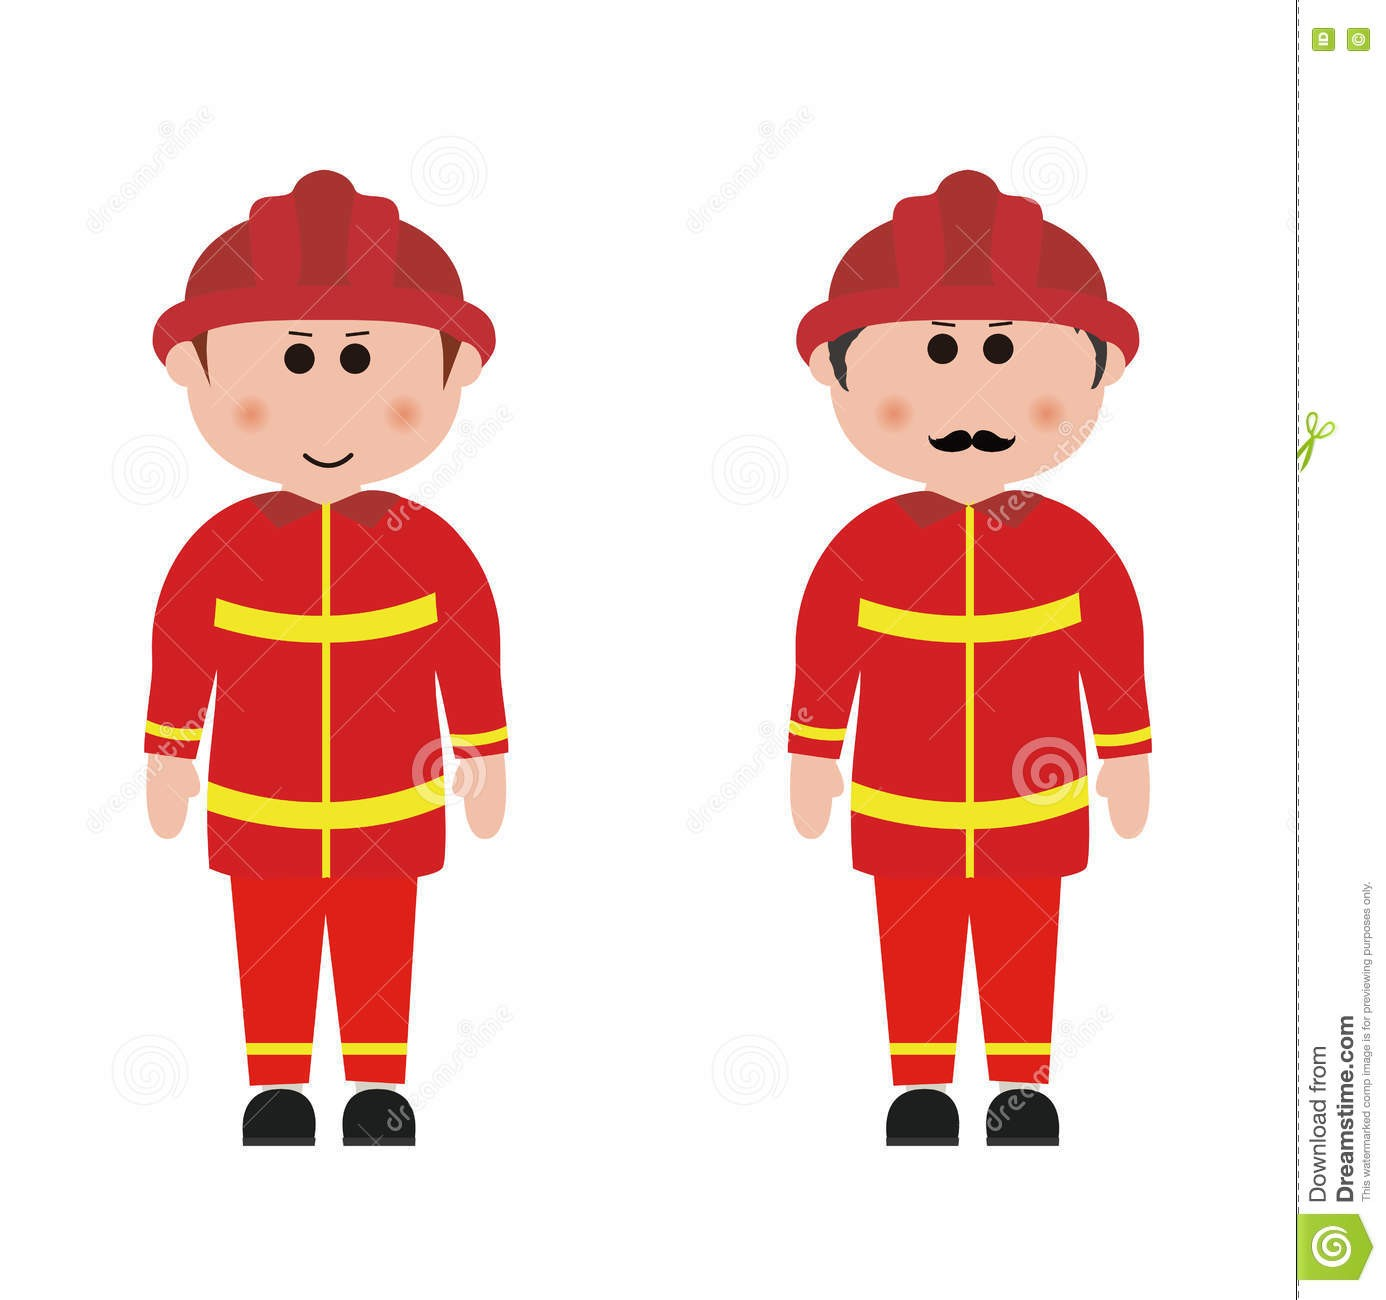 Firefighter clipart ocupation. For of firefighters occupation